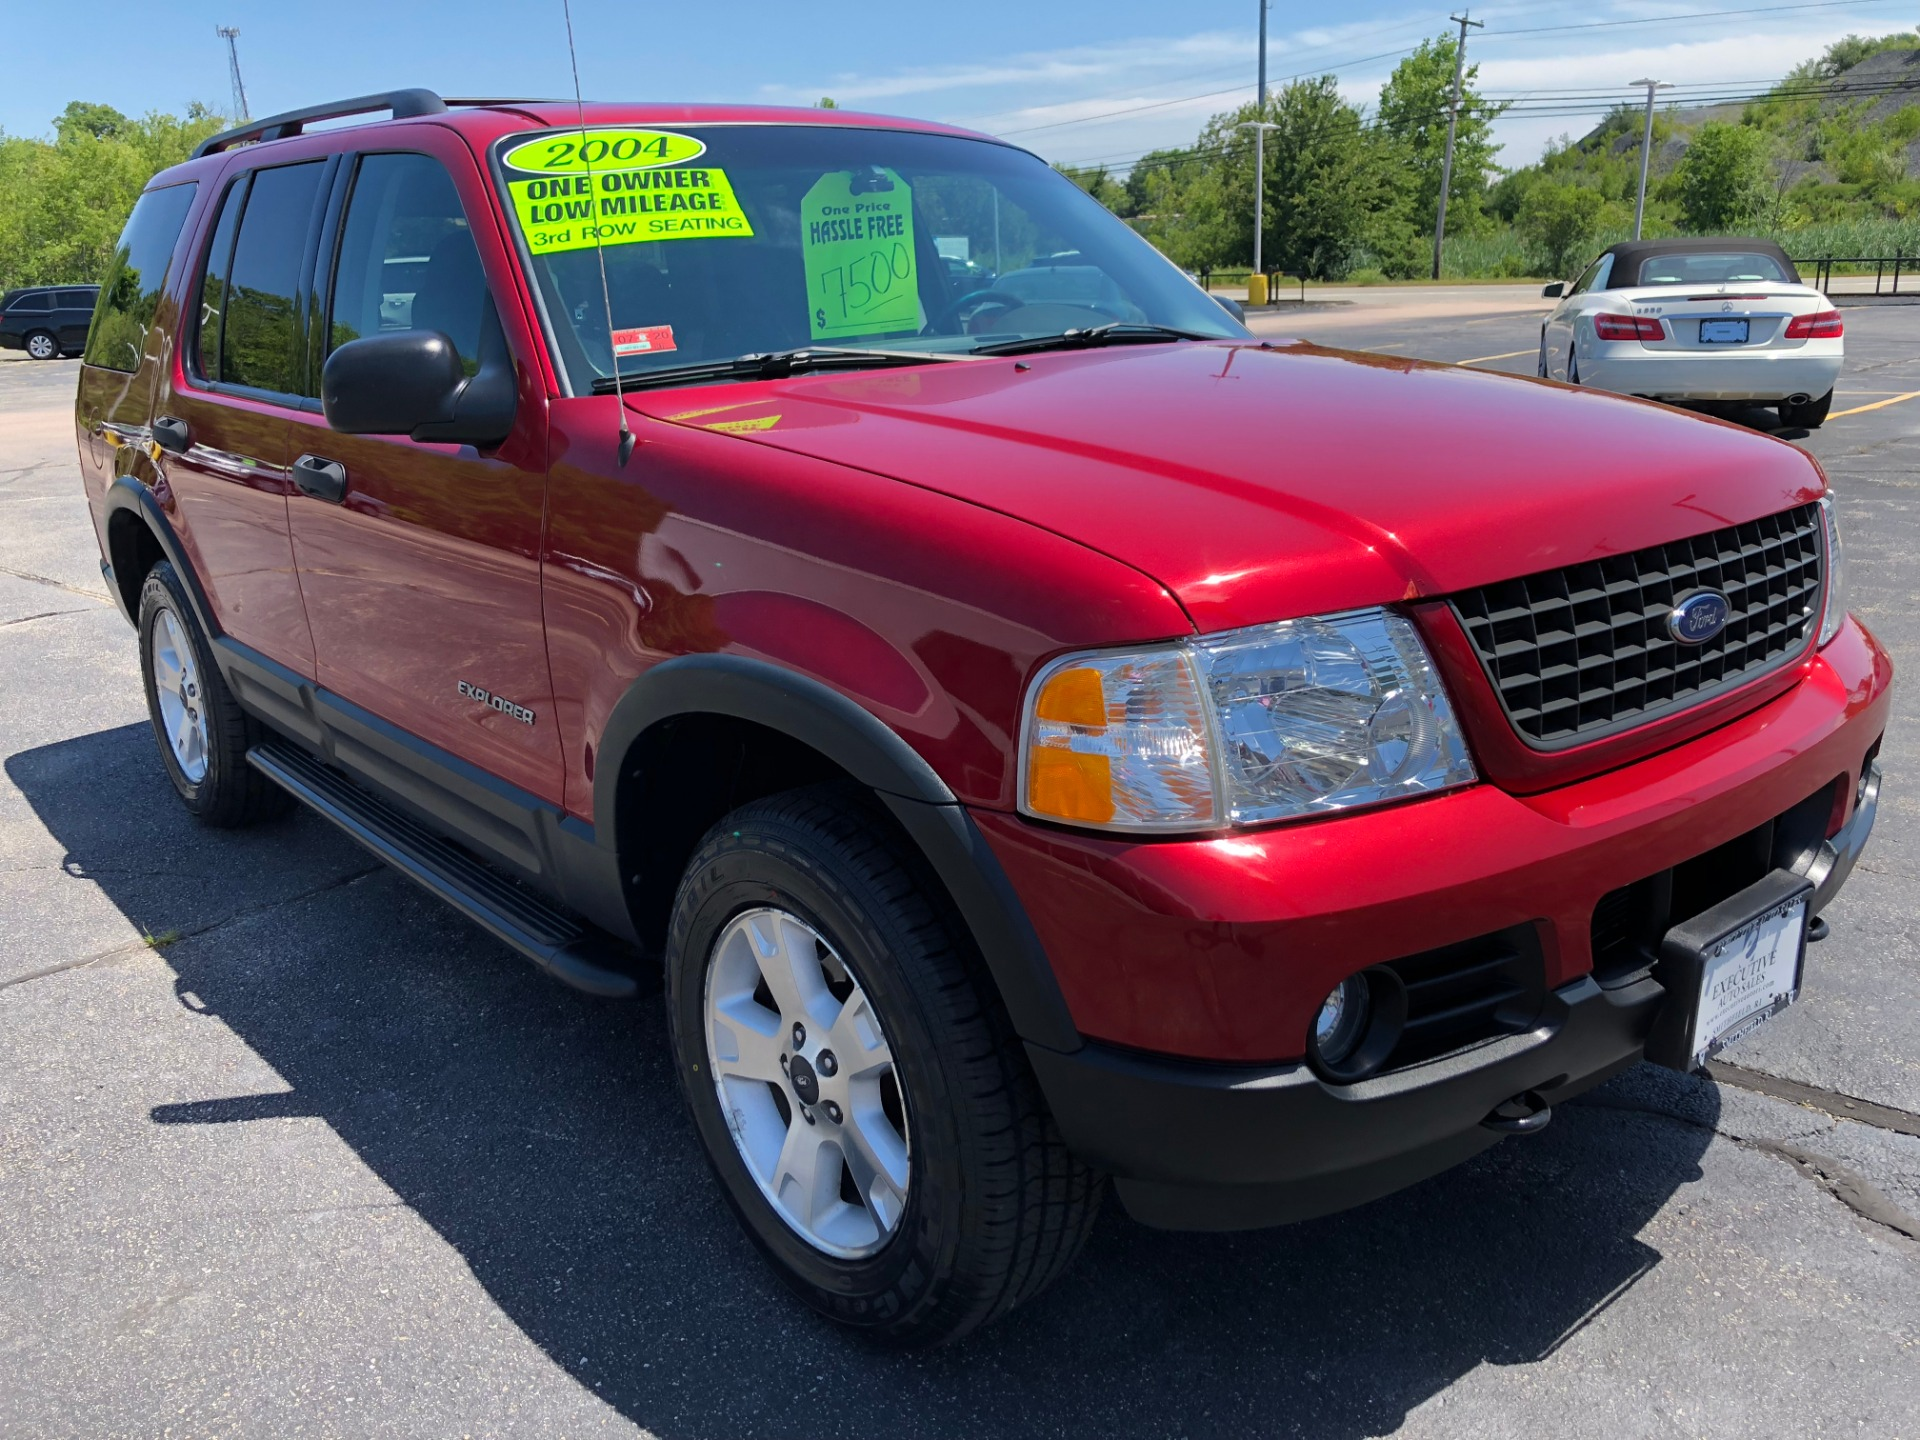 Used 2004 Ford Explorer Xlt For Sale 7 500 Executive Auto Sales